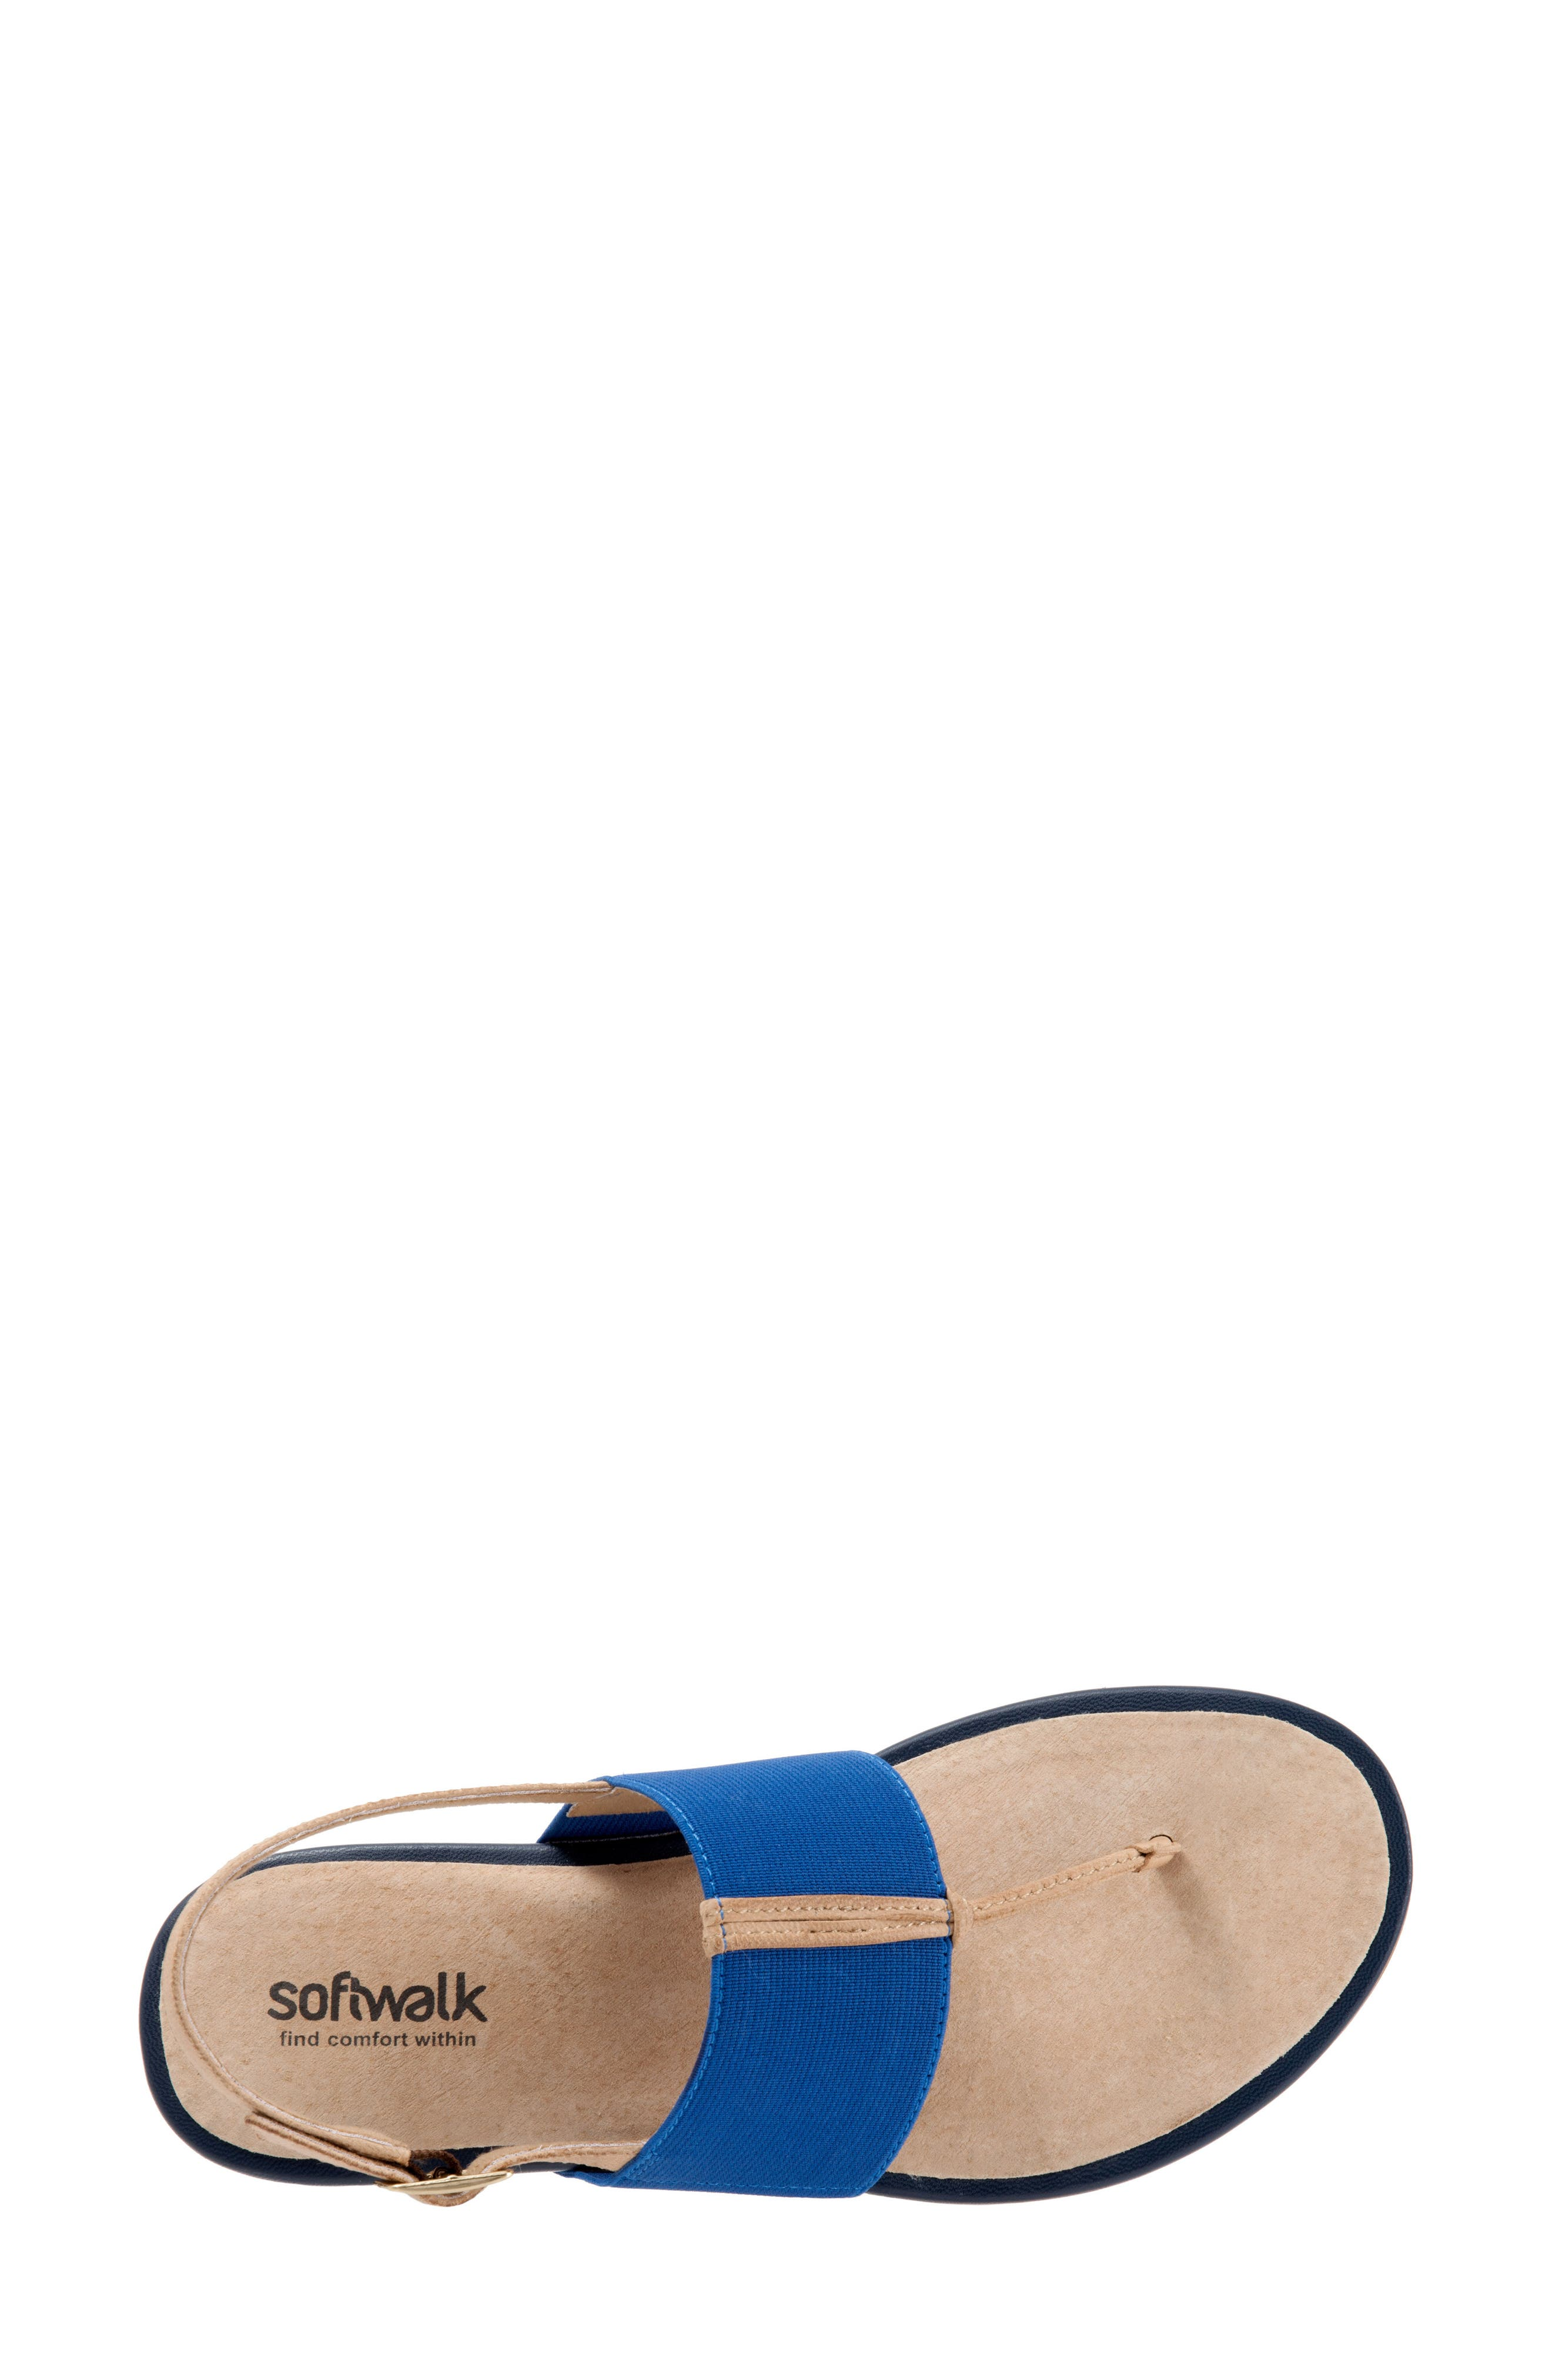 Daytona Sandal,                             Alternate thumbnail 5, color,                             Navy/ Tan Leather